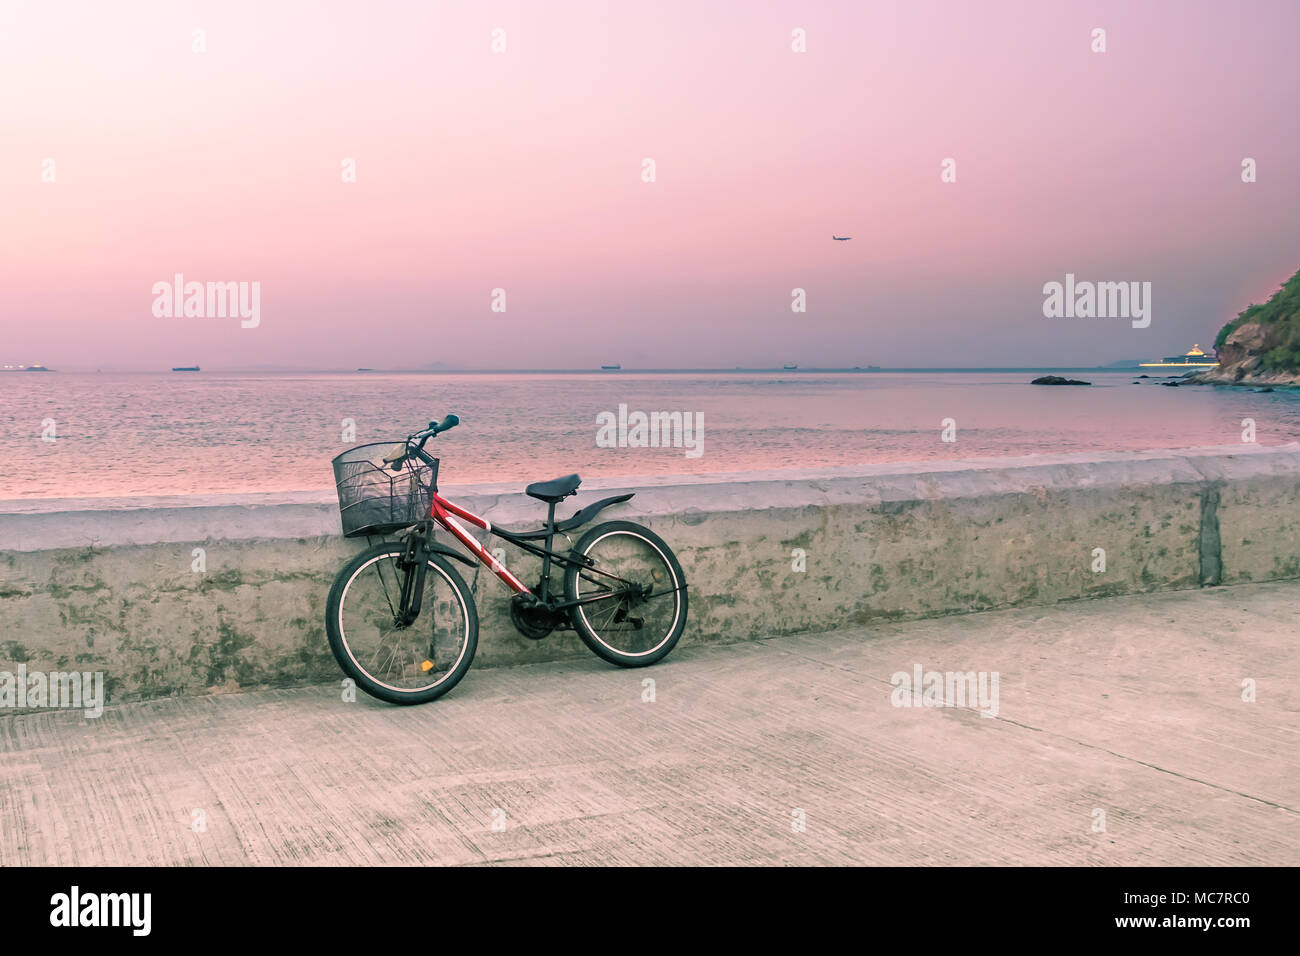 Lonely bicycle with metal basket standing on concrete pier. Seascape background with fishing boats on horizon line. Toned image. - Stock Image